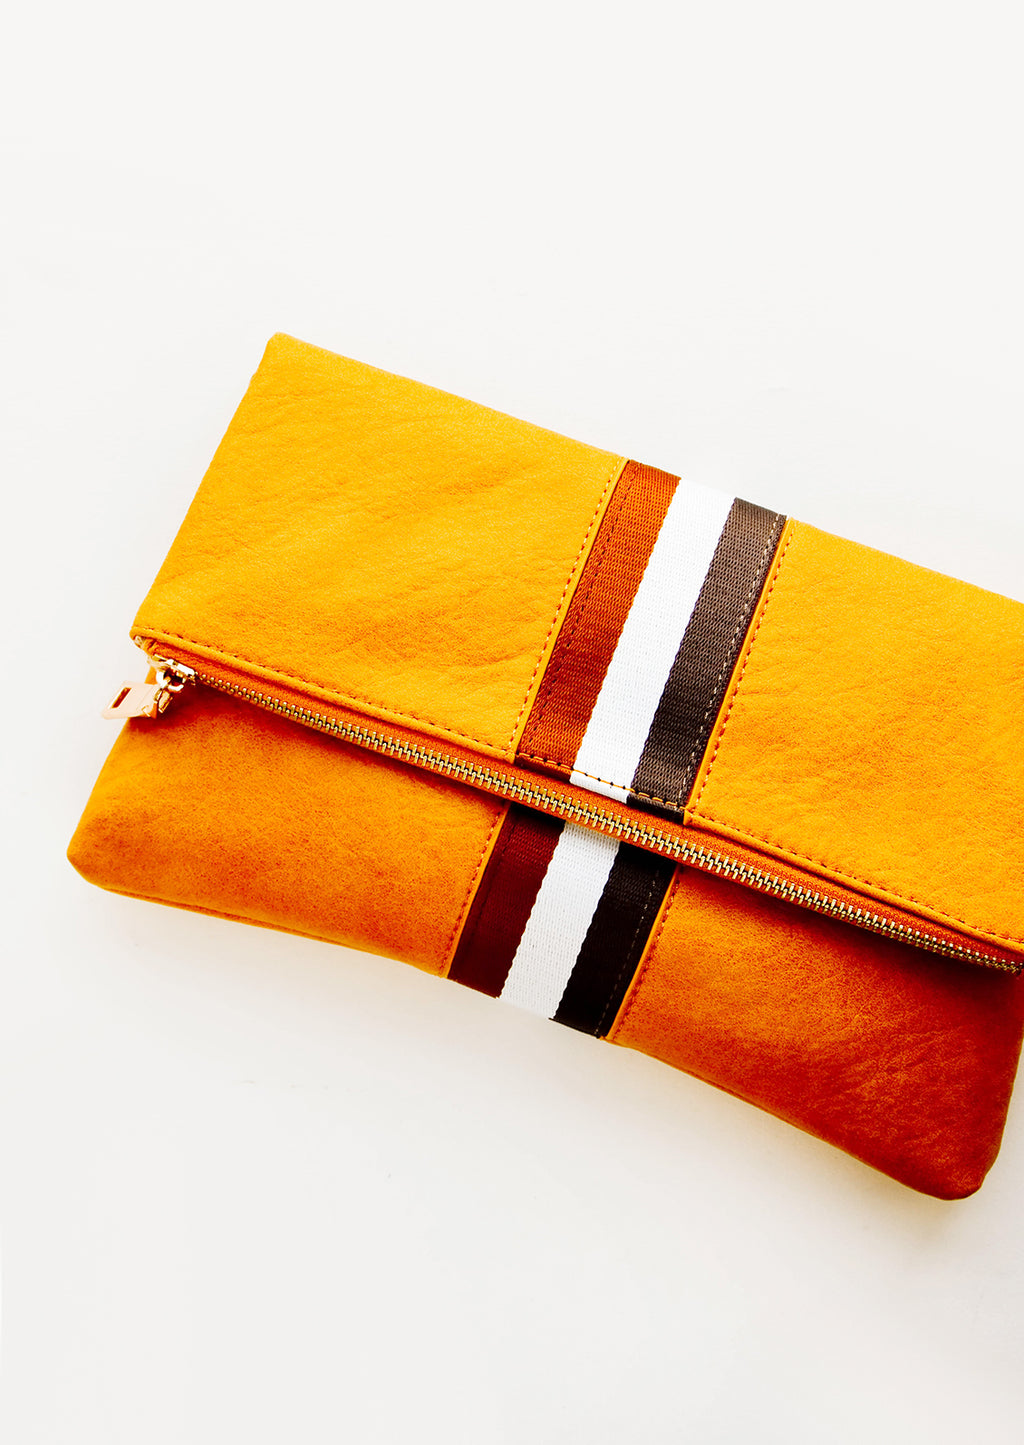 Mustard / Tan: A mustard yellow fold over clutch with a trio of white and brown vertical stripes.